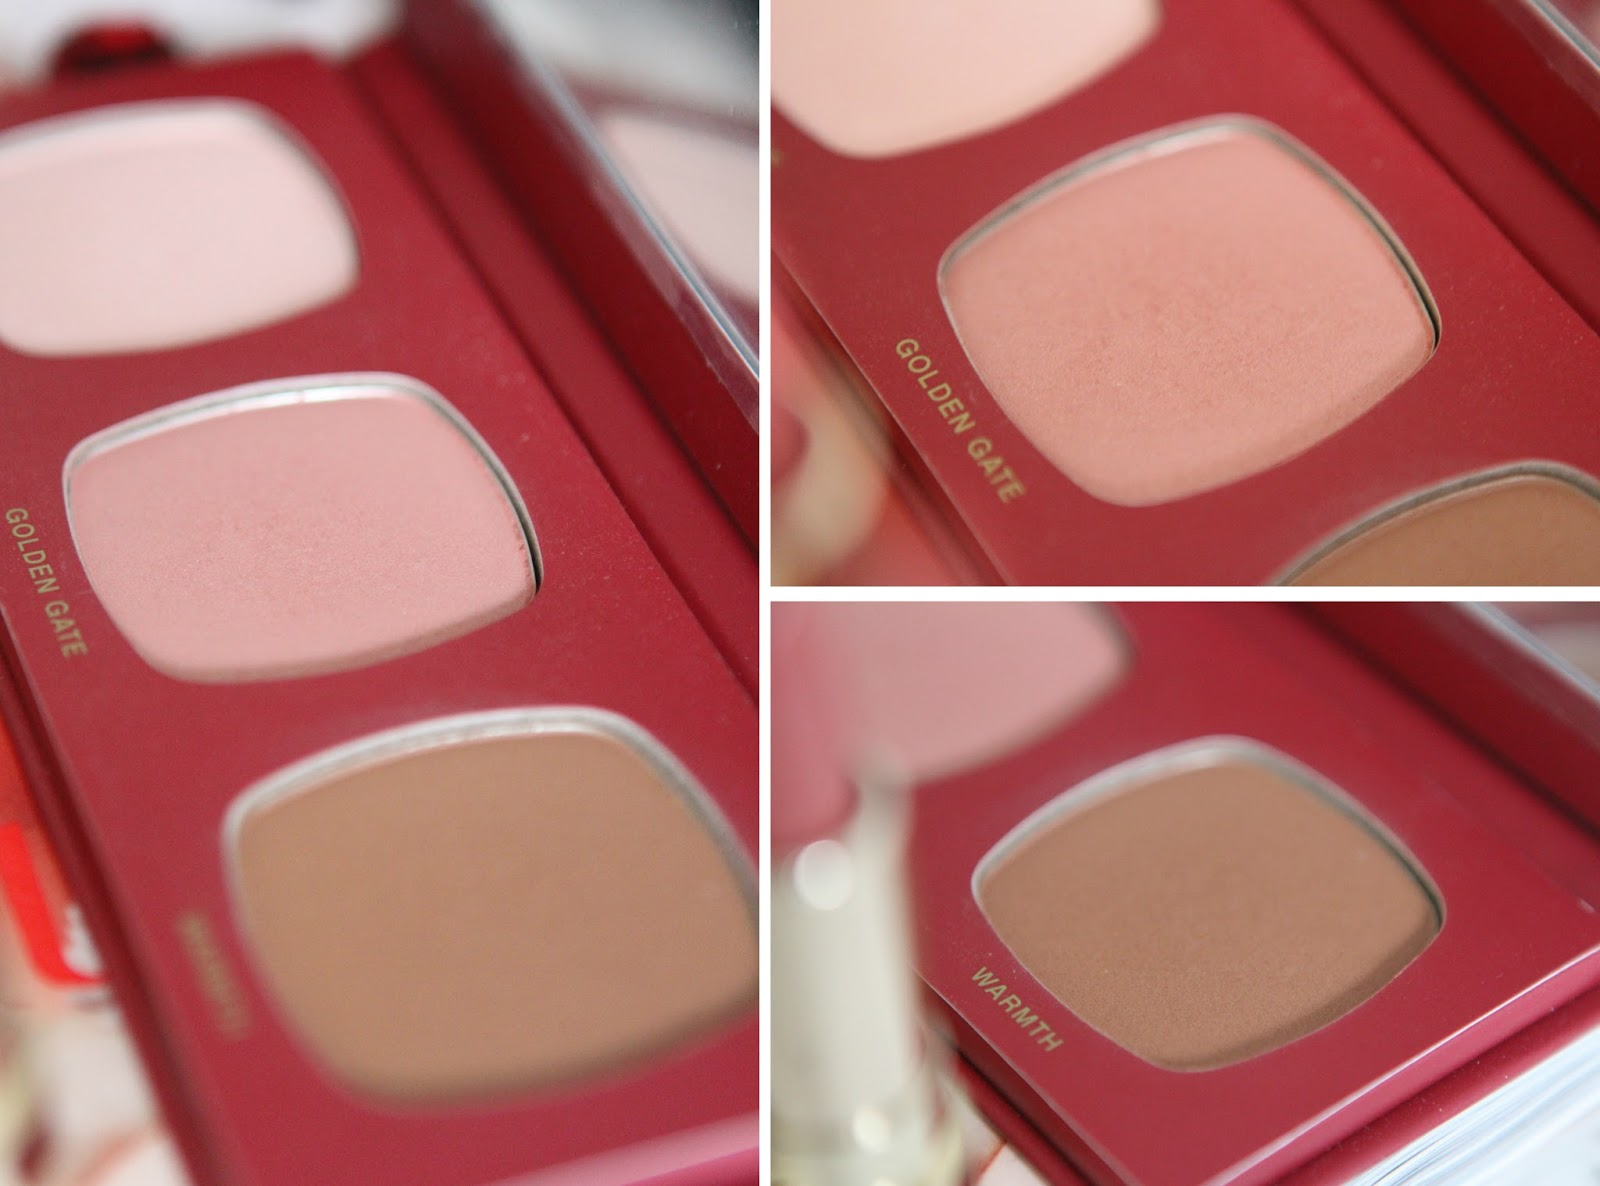 Bareminerals The Royal Court